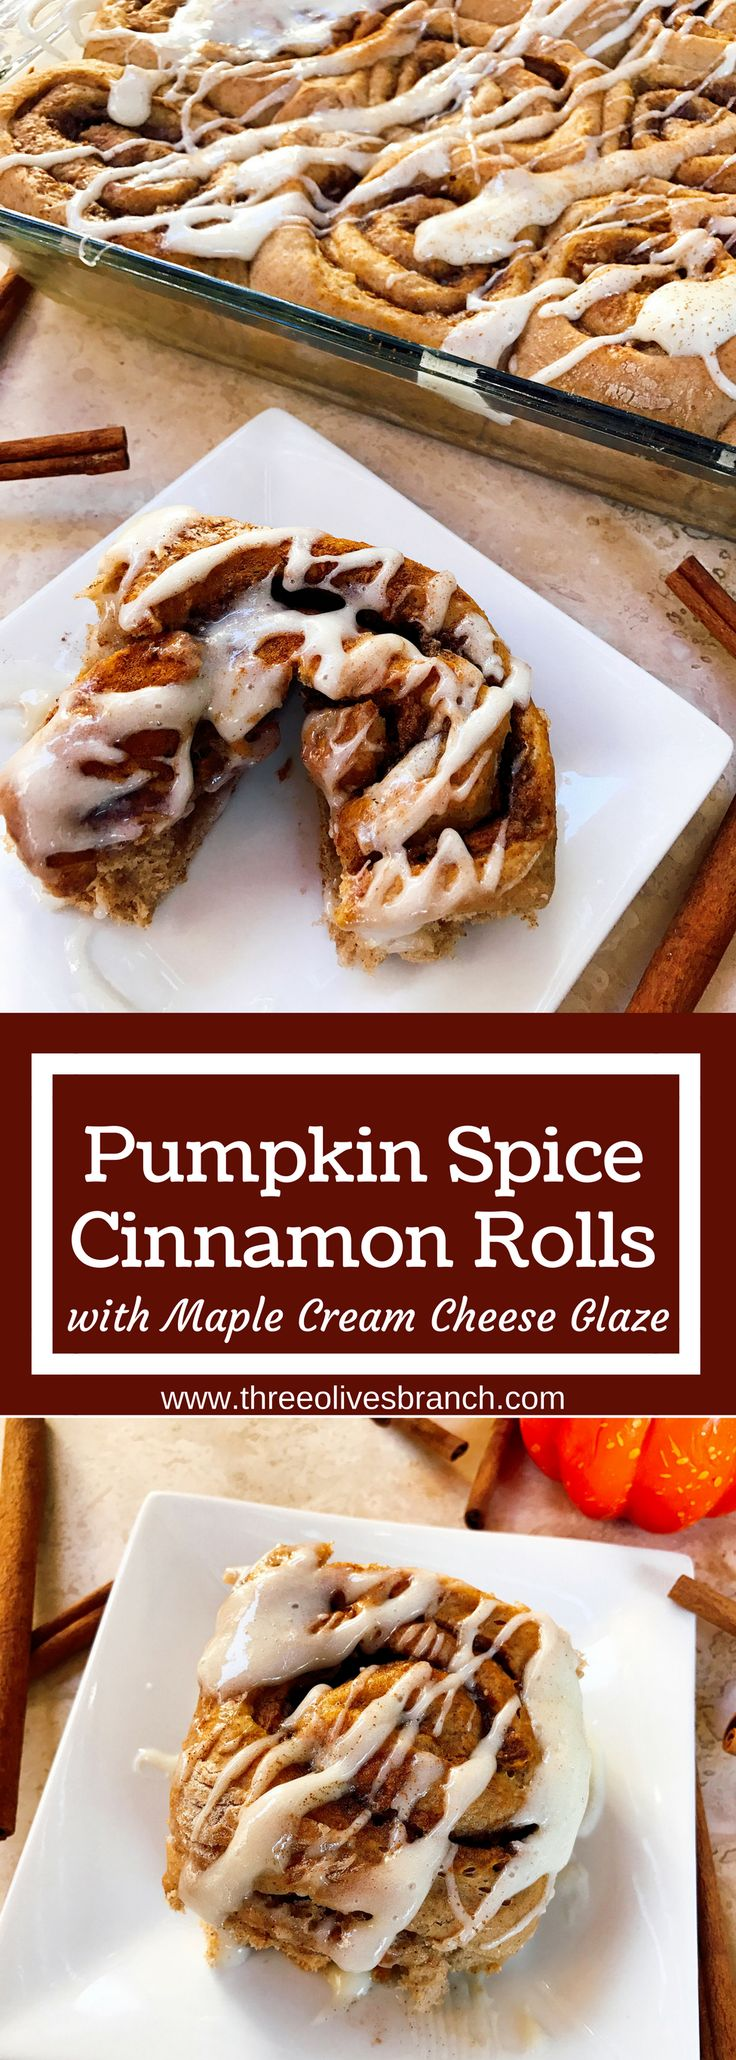 These rolls are a special treat to celebrate fall! Make them the day before for an easy morning. A great way to celebrate Thanksgiving or a special day. Pumpkin Spice Cinnamon Rolls with Maple Cream Cheese Glaze are perfect for breakfast or brunch. Make extra as they will be devoured! Vegetarian   Three Olives Branch   www.threeolivesbranch.com